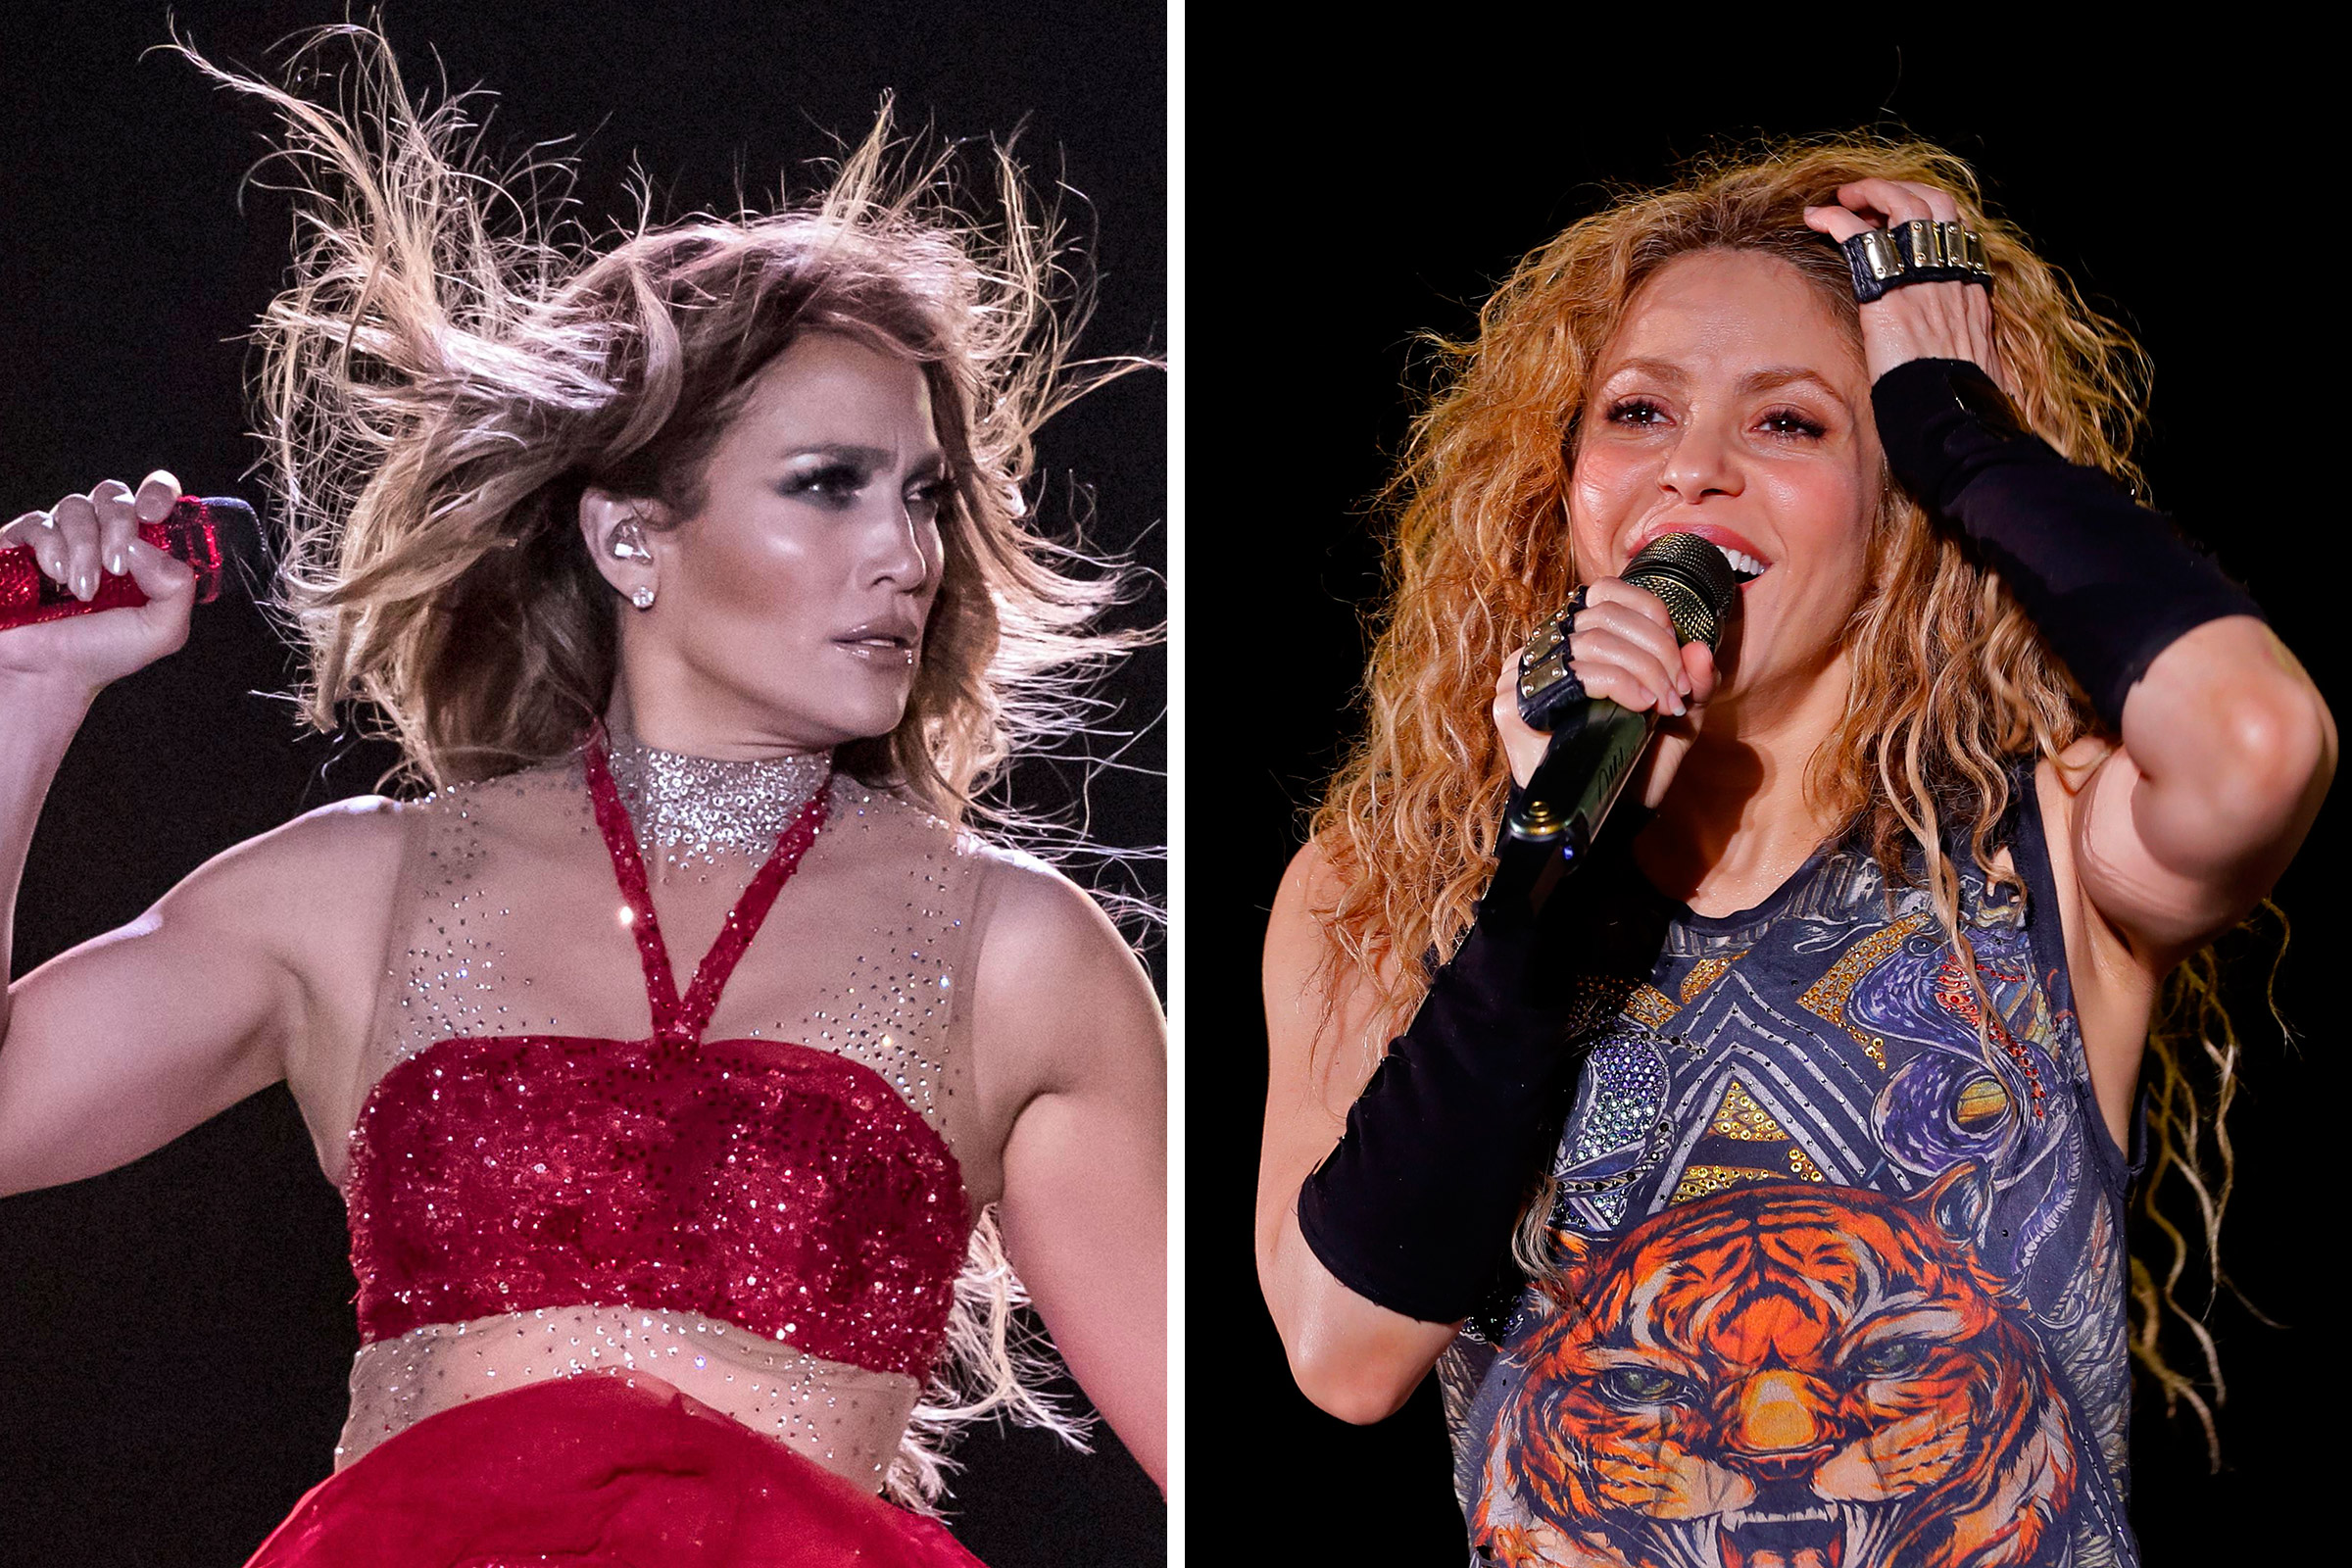 Jennifer Lopez and Shakira will headline the 2020 Super Bowl Halftime Show, they confirmed on Thursday, Sept. 26, 2019.